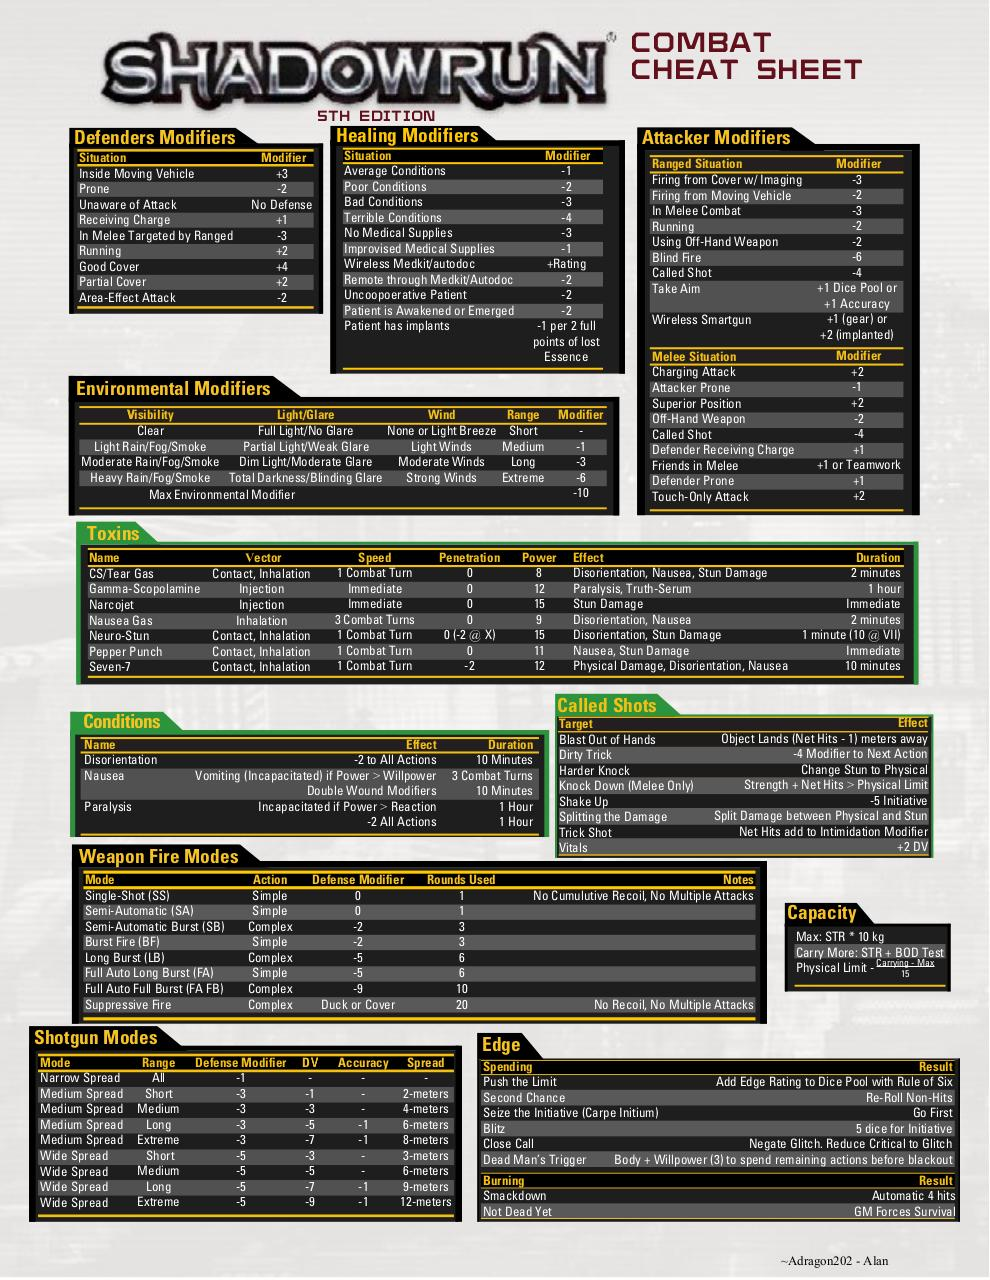 shadowrun_combat_cheat_sheet_by_adragon202-d71s2y5.pdf - page 2/2